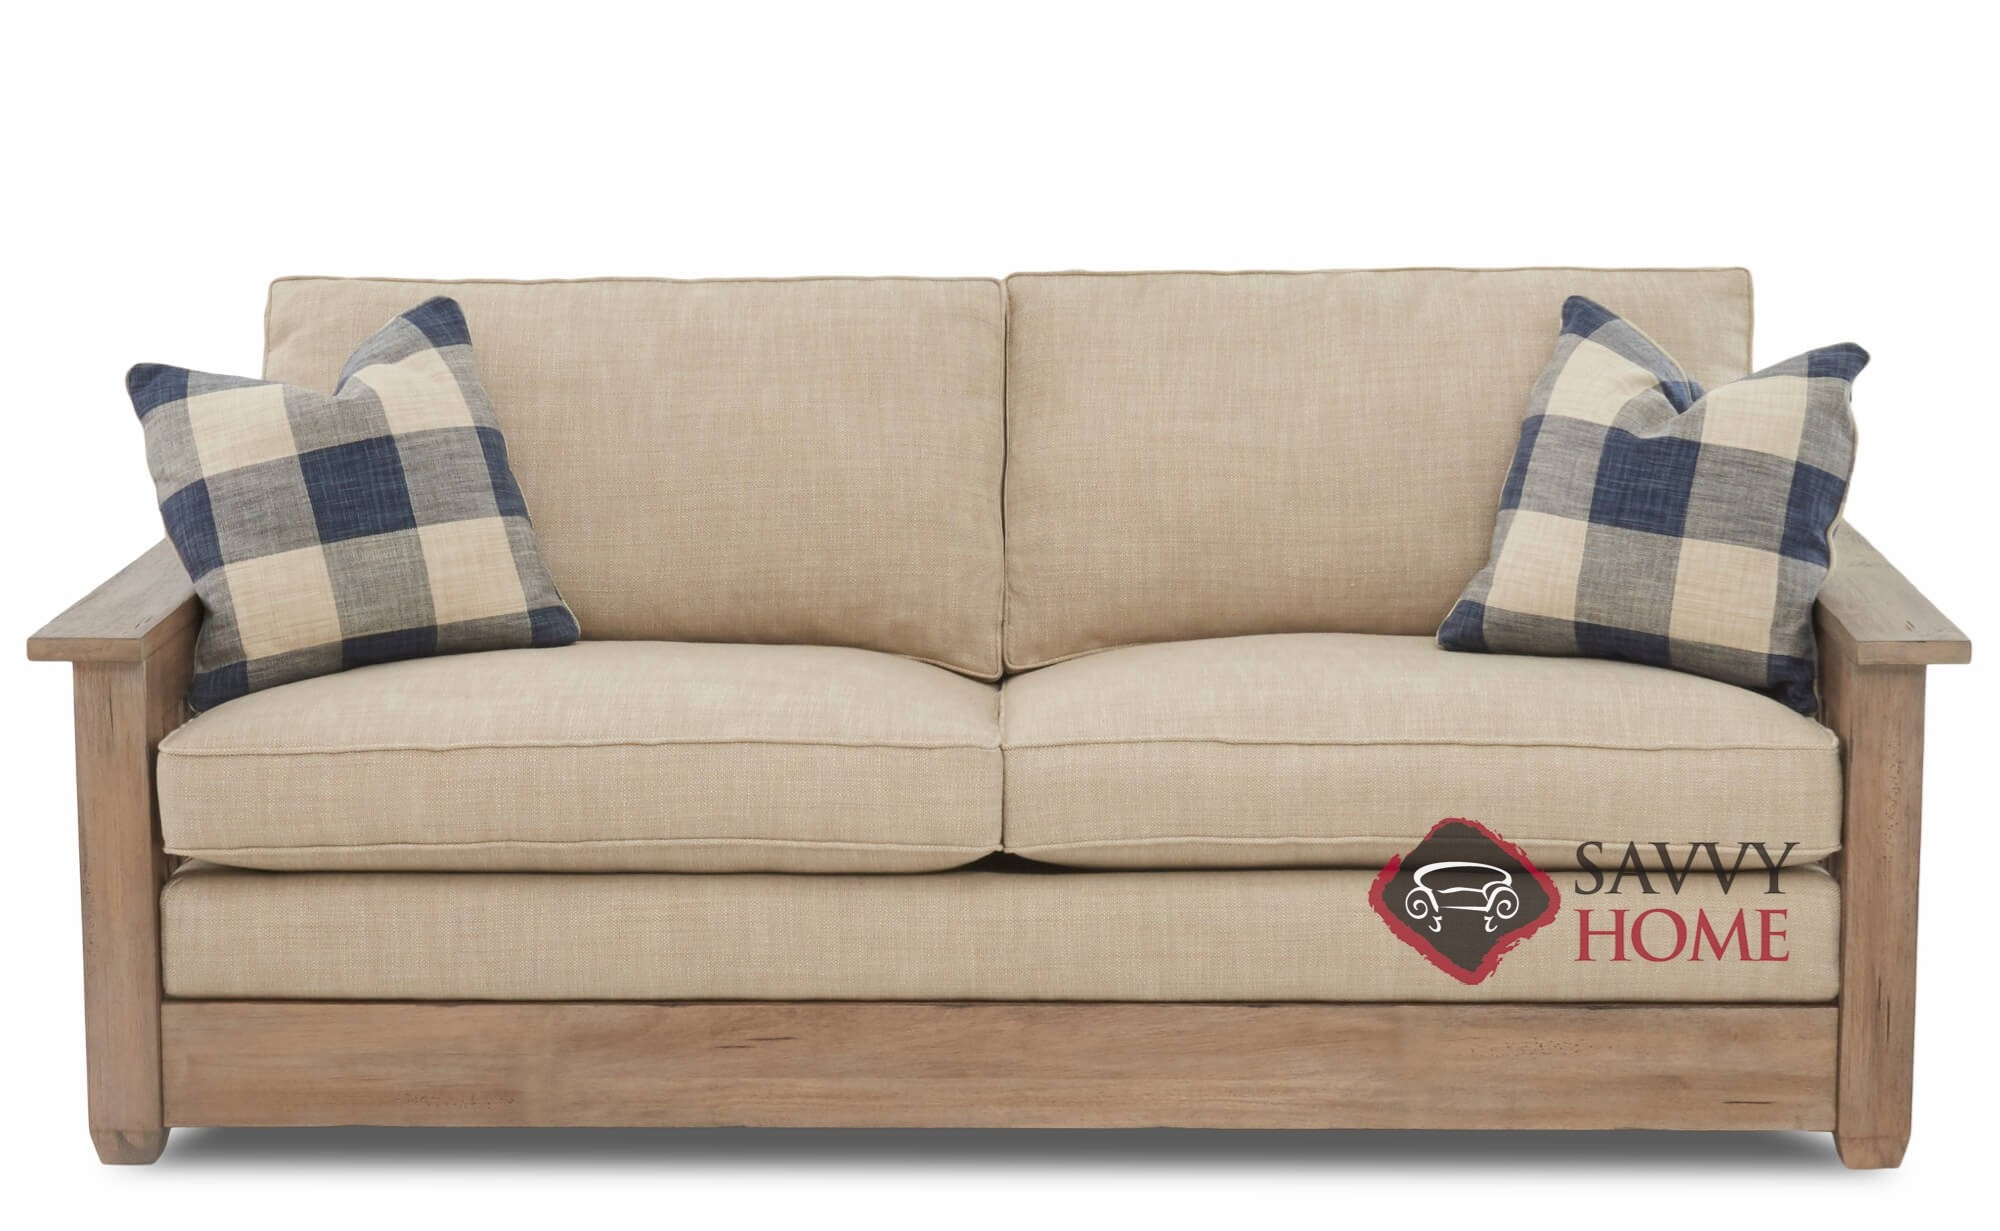 Garland Fabric Sleeper Sofas Queen By Savvy Is Fully